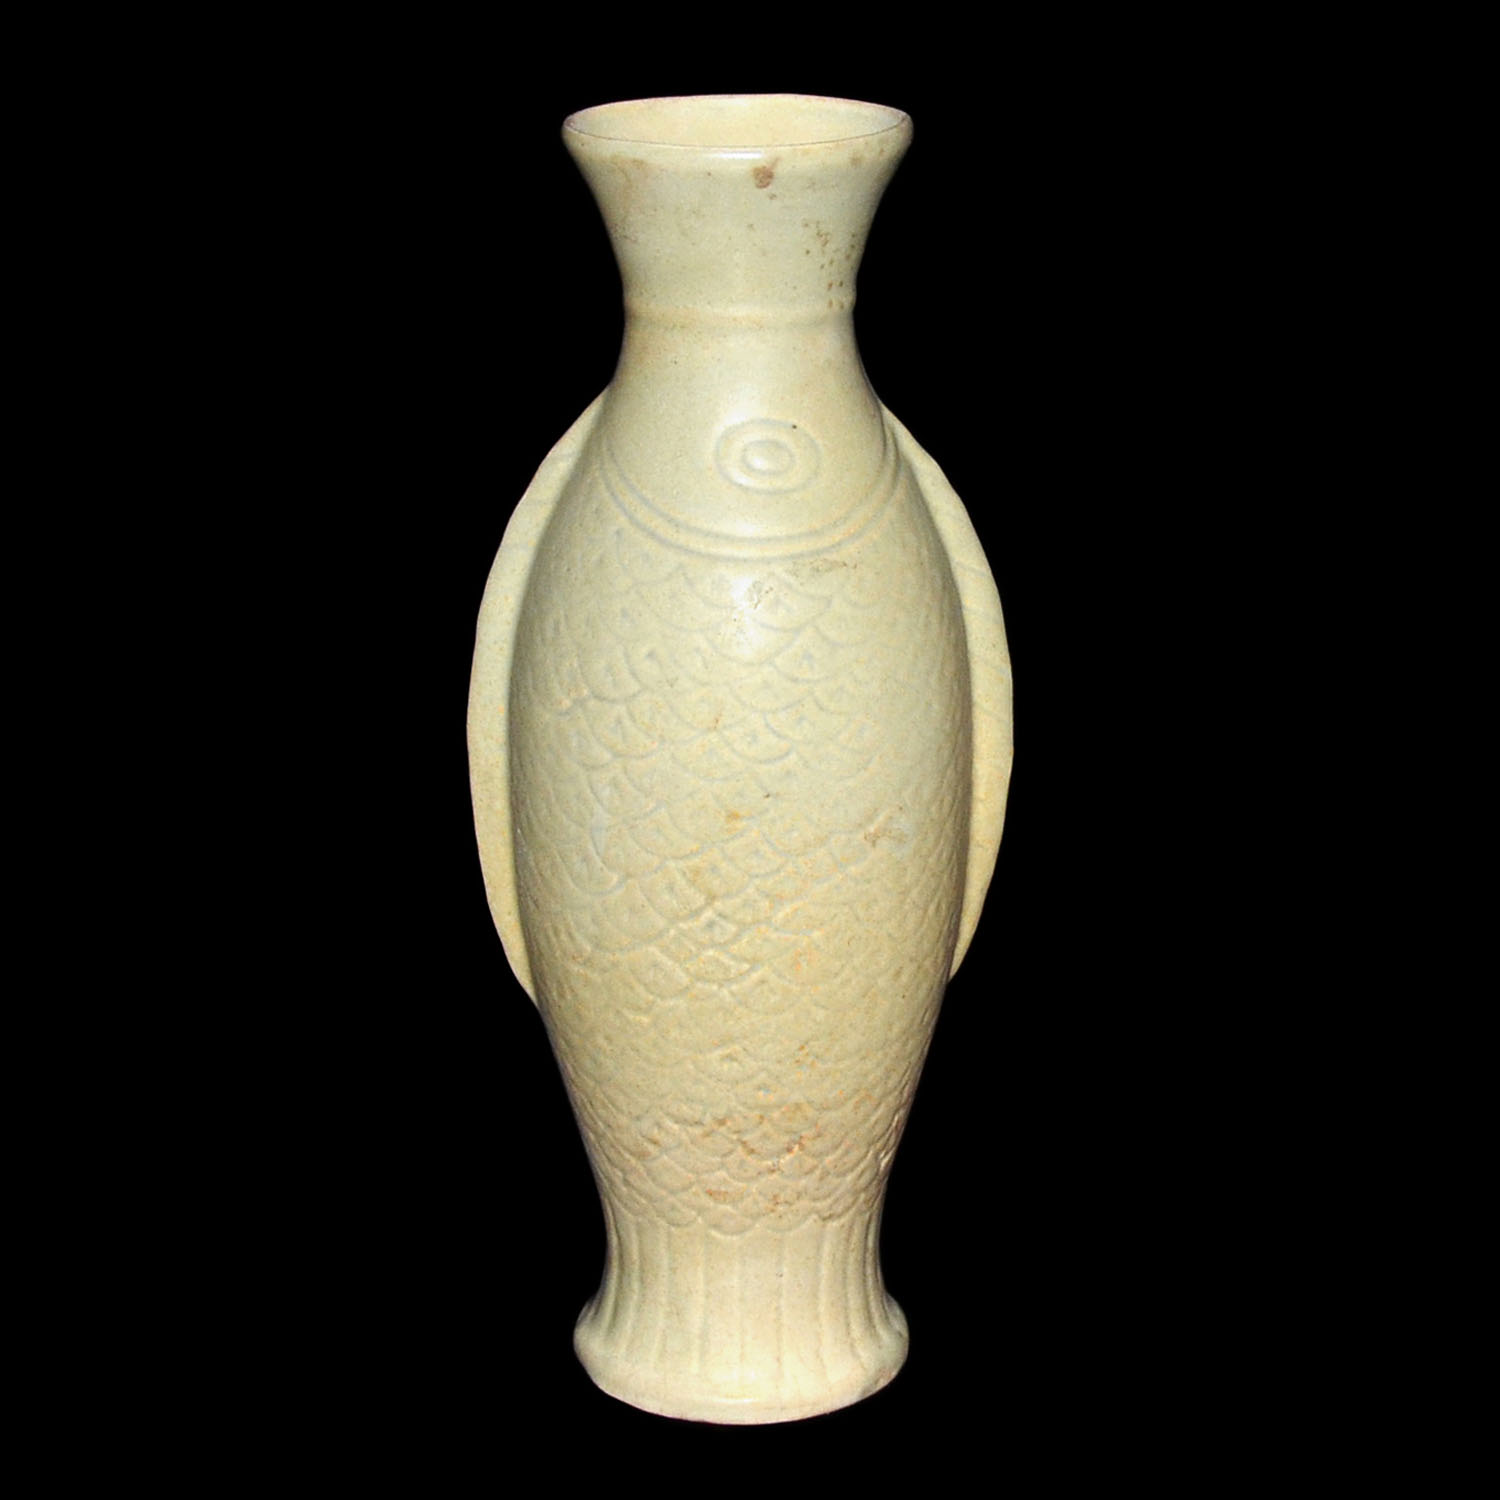 Lot 185 - 宋 定窯稀有白釉刻花魚瓶 Song, A Rare Dingyao Fish-Form Vase Incised with fish scales and flanked by fin-